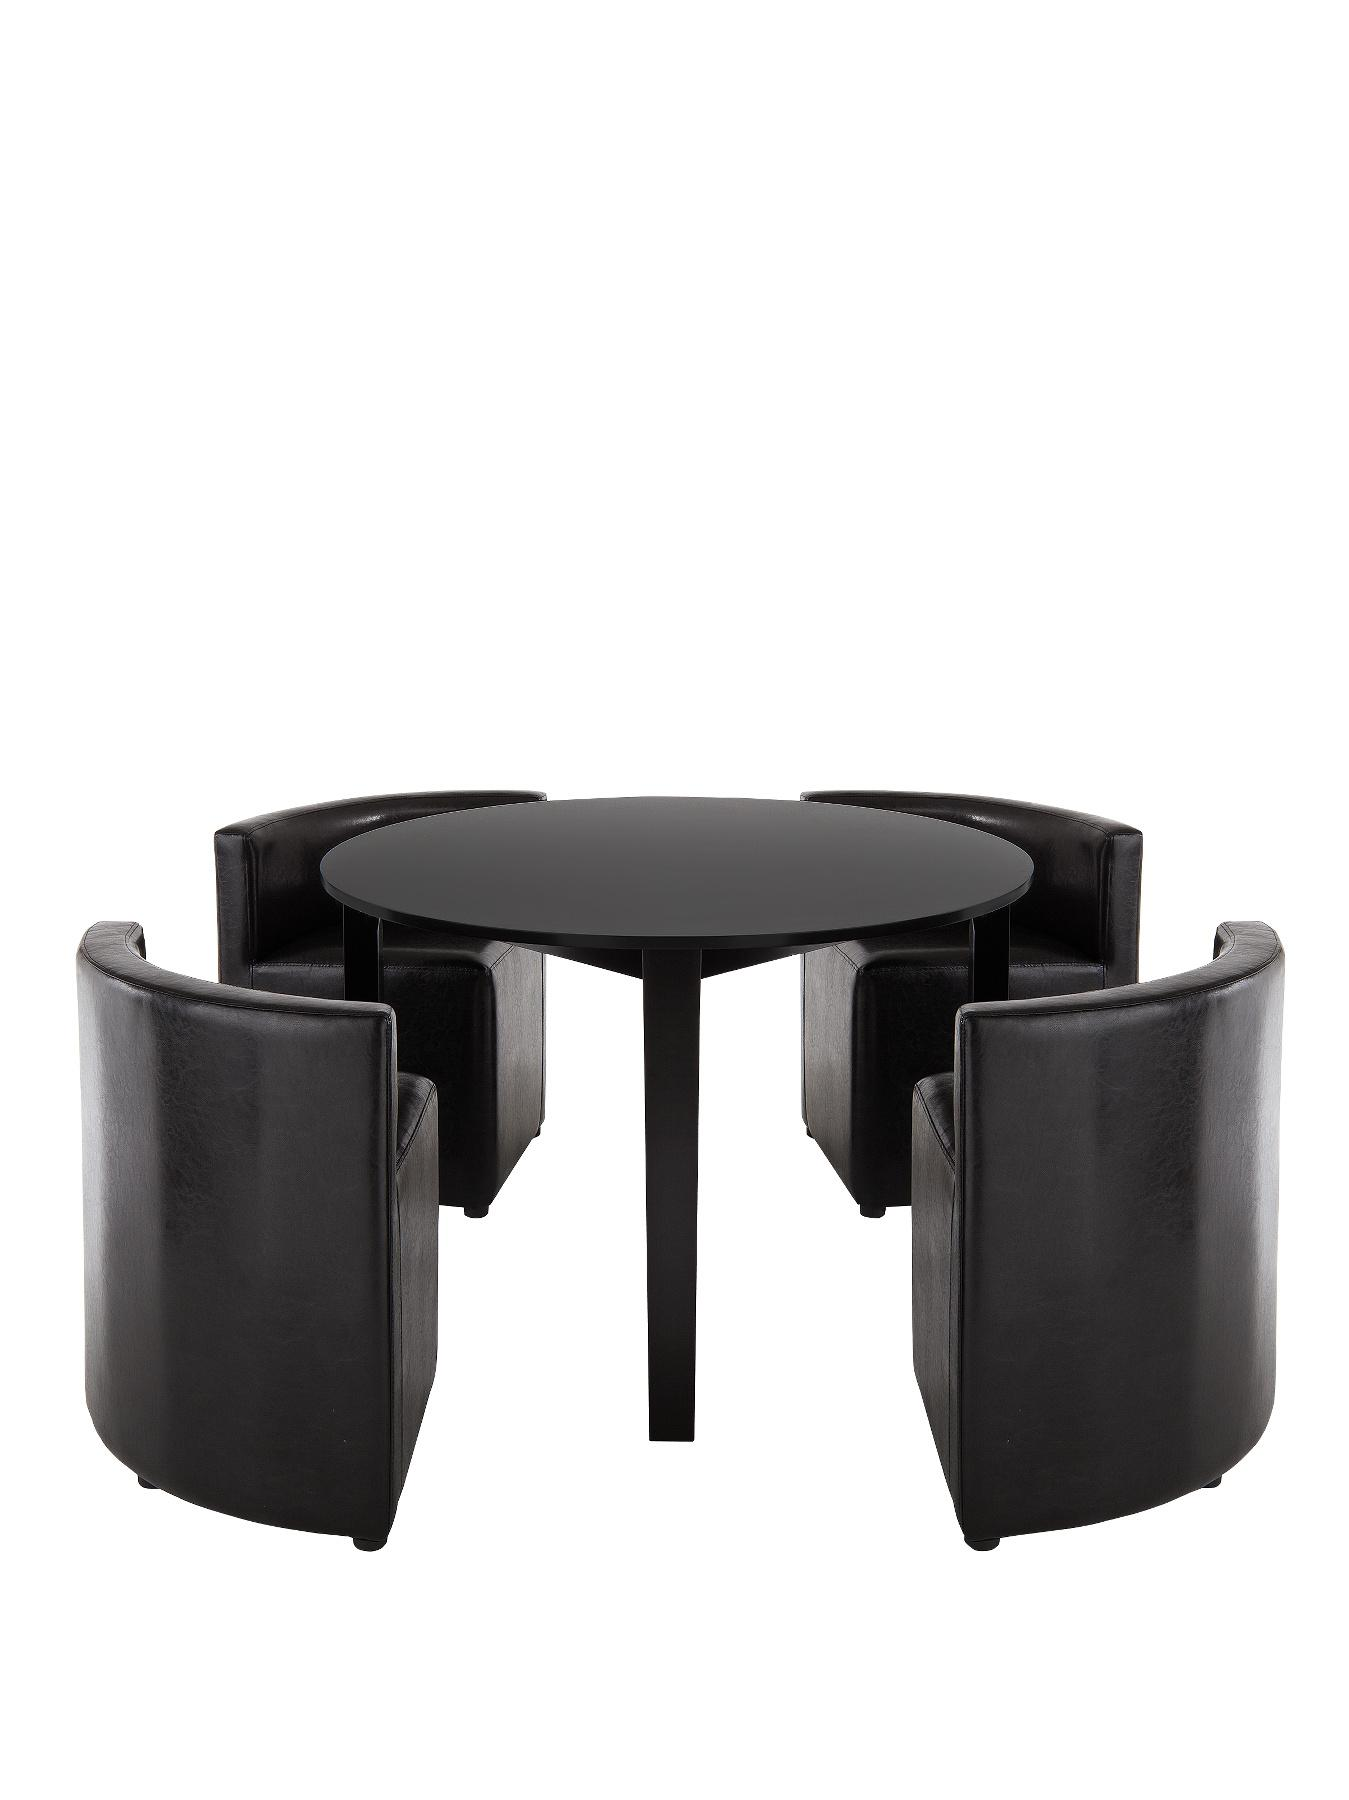 Hideaway 106 cm Round Dining Table & 4 Chairs (Black)